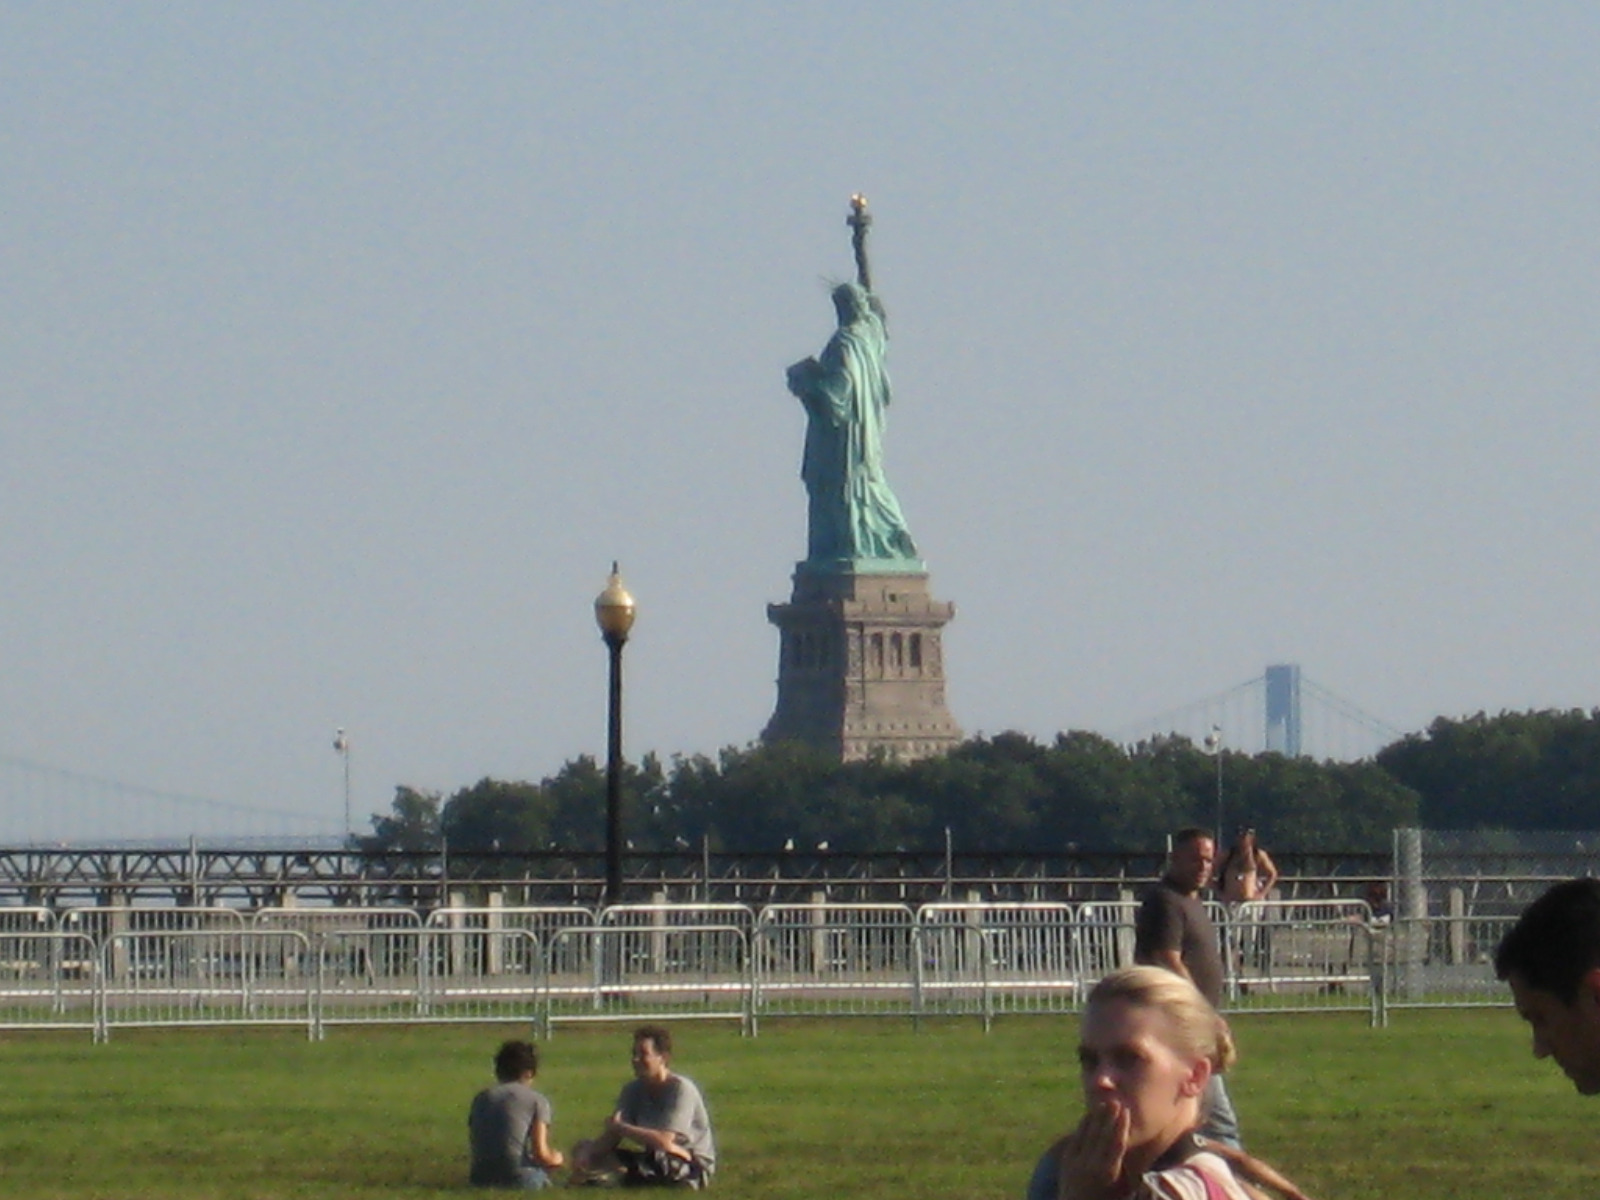 SONCO Barricades in New York, With the Statue of Liberty in the Background